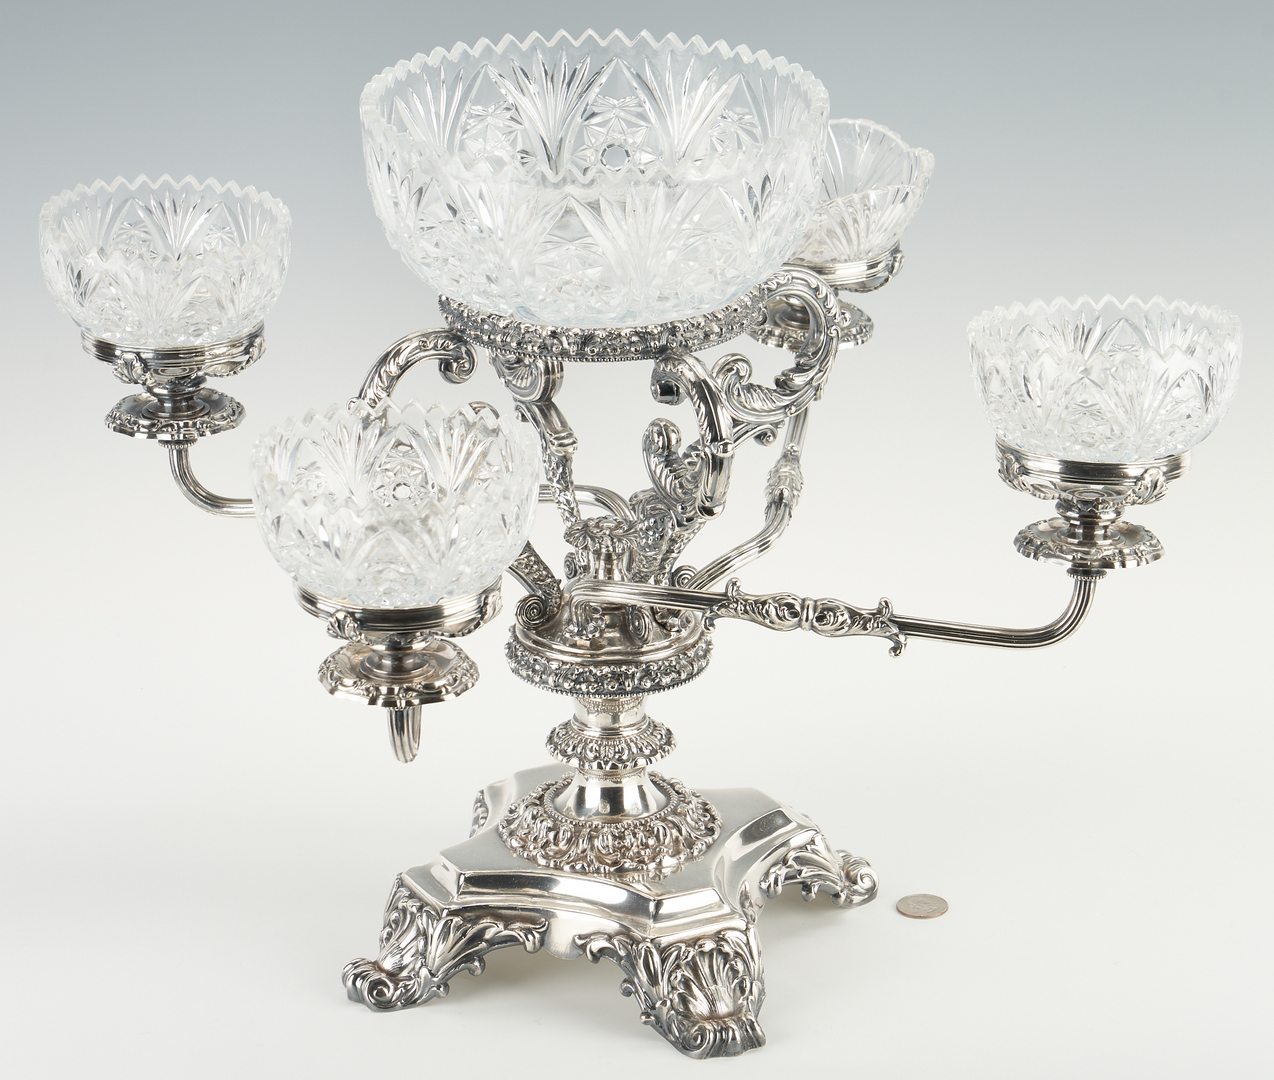 Lot 1248: English Silverplated Epergne, Walker, Hall & Co.